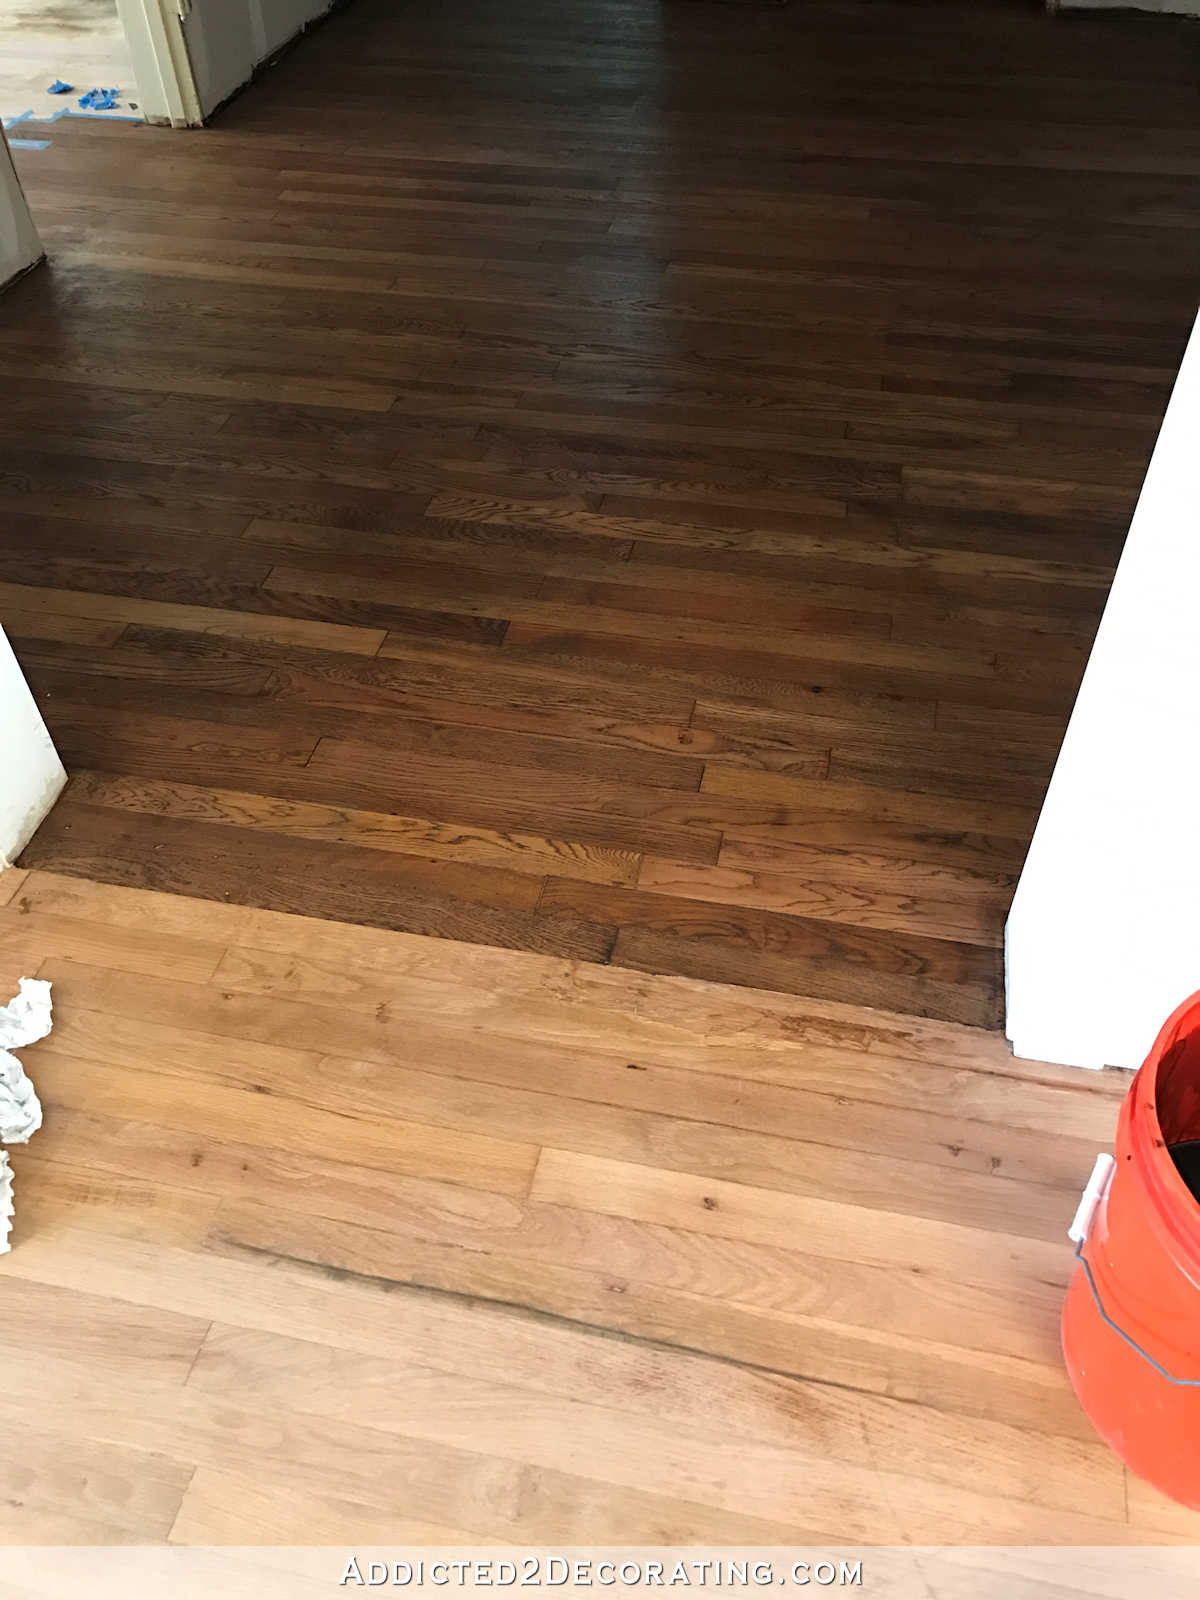 can you have two different types of hardwood floors of adventures in staining my red oak hardwood floors products process with staining red oak hardwood floors 2 tape off one section at a time for